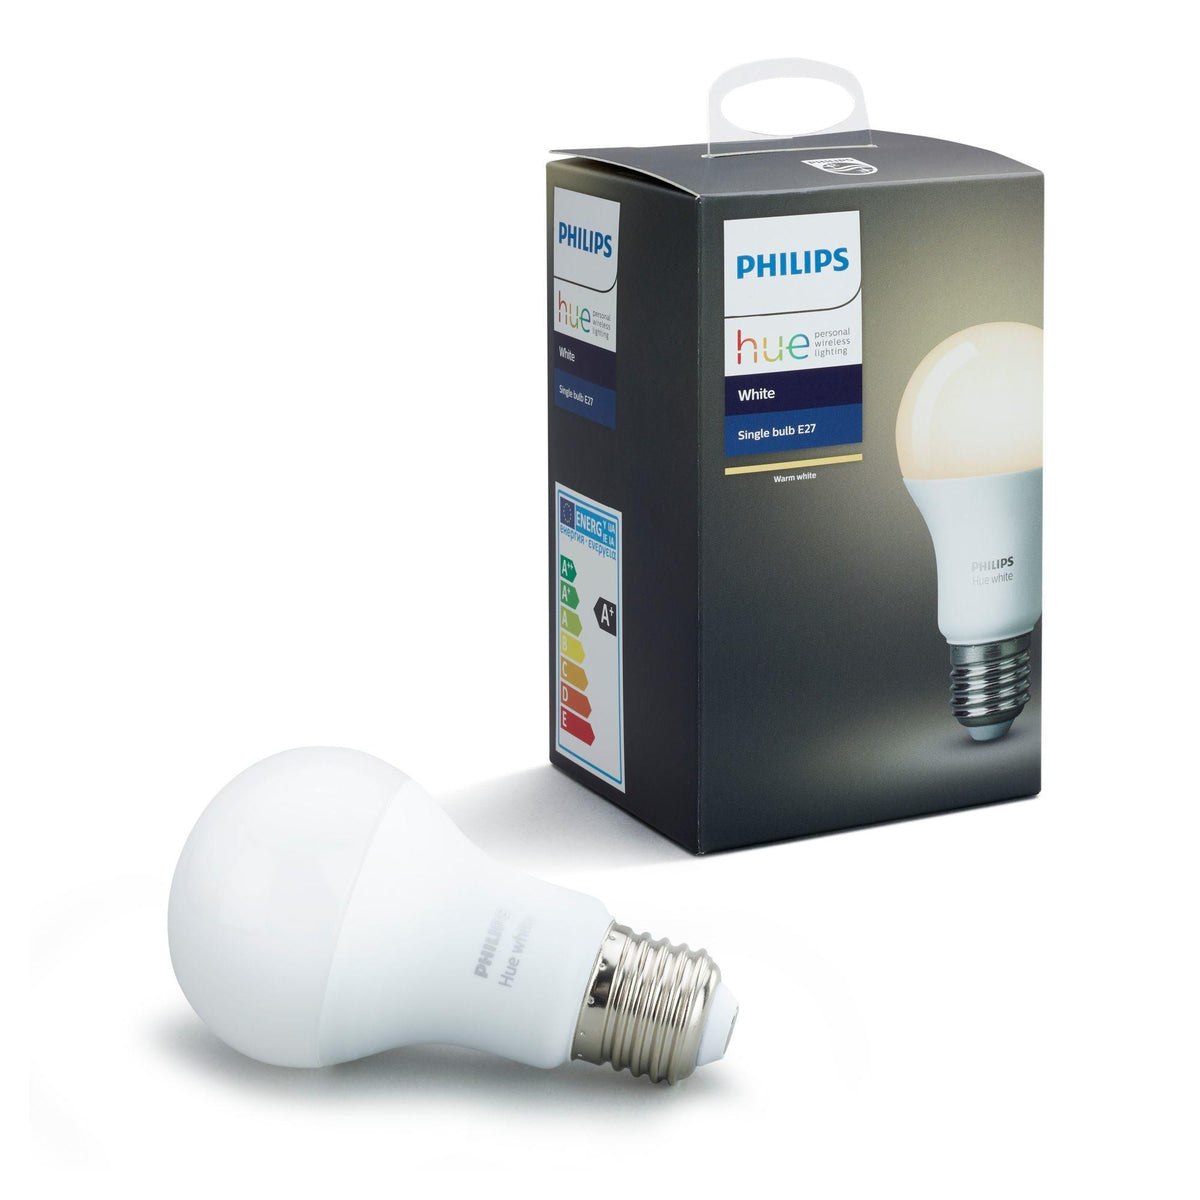 Philips Hue E27 (A19) White Smart Bulbs (Single Pack) - White